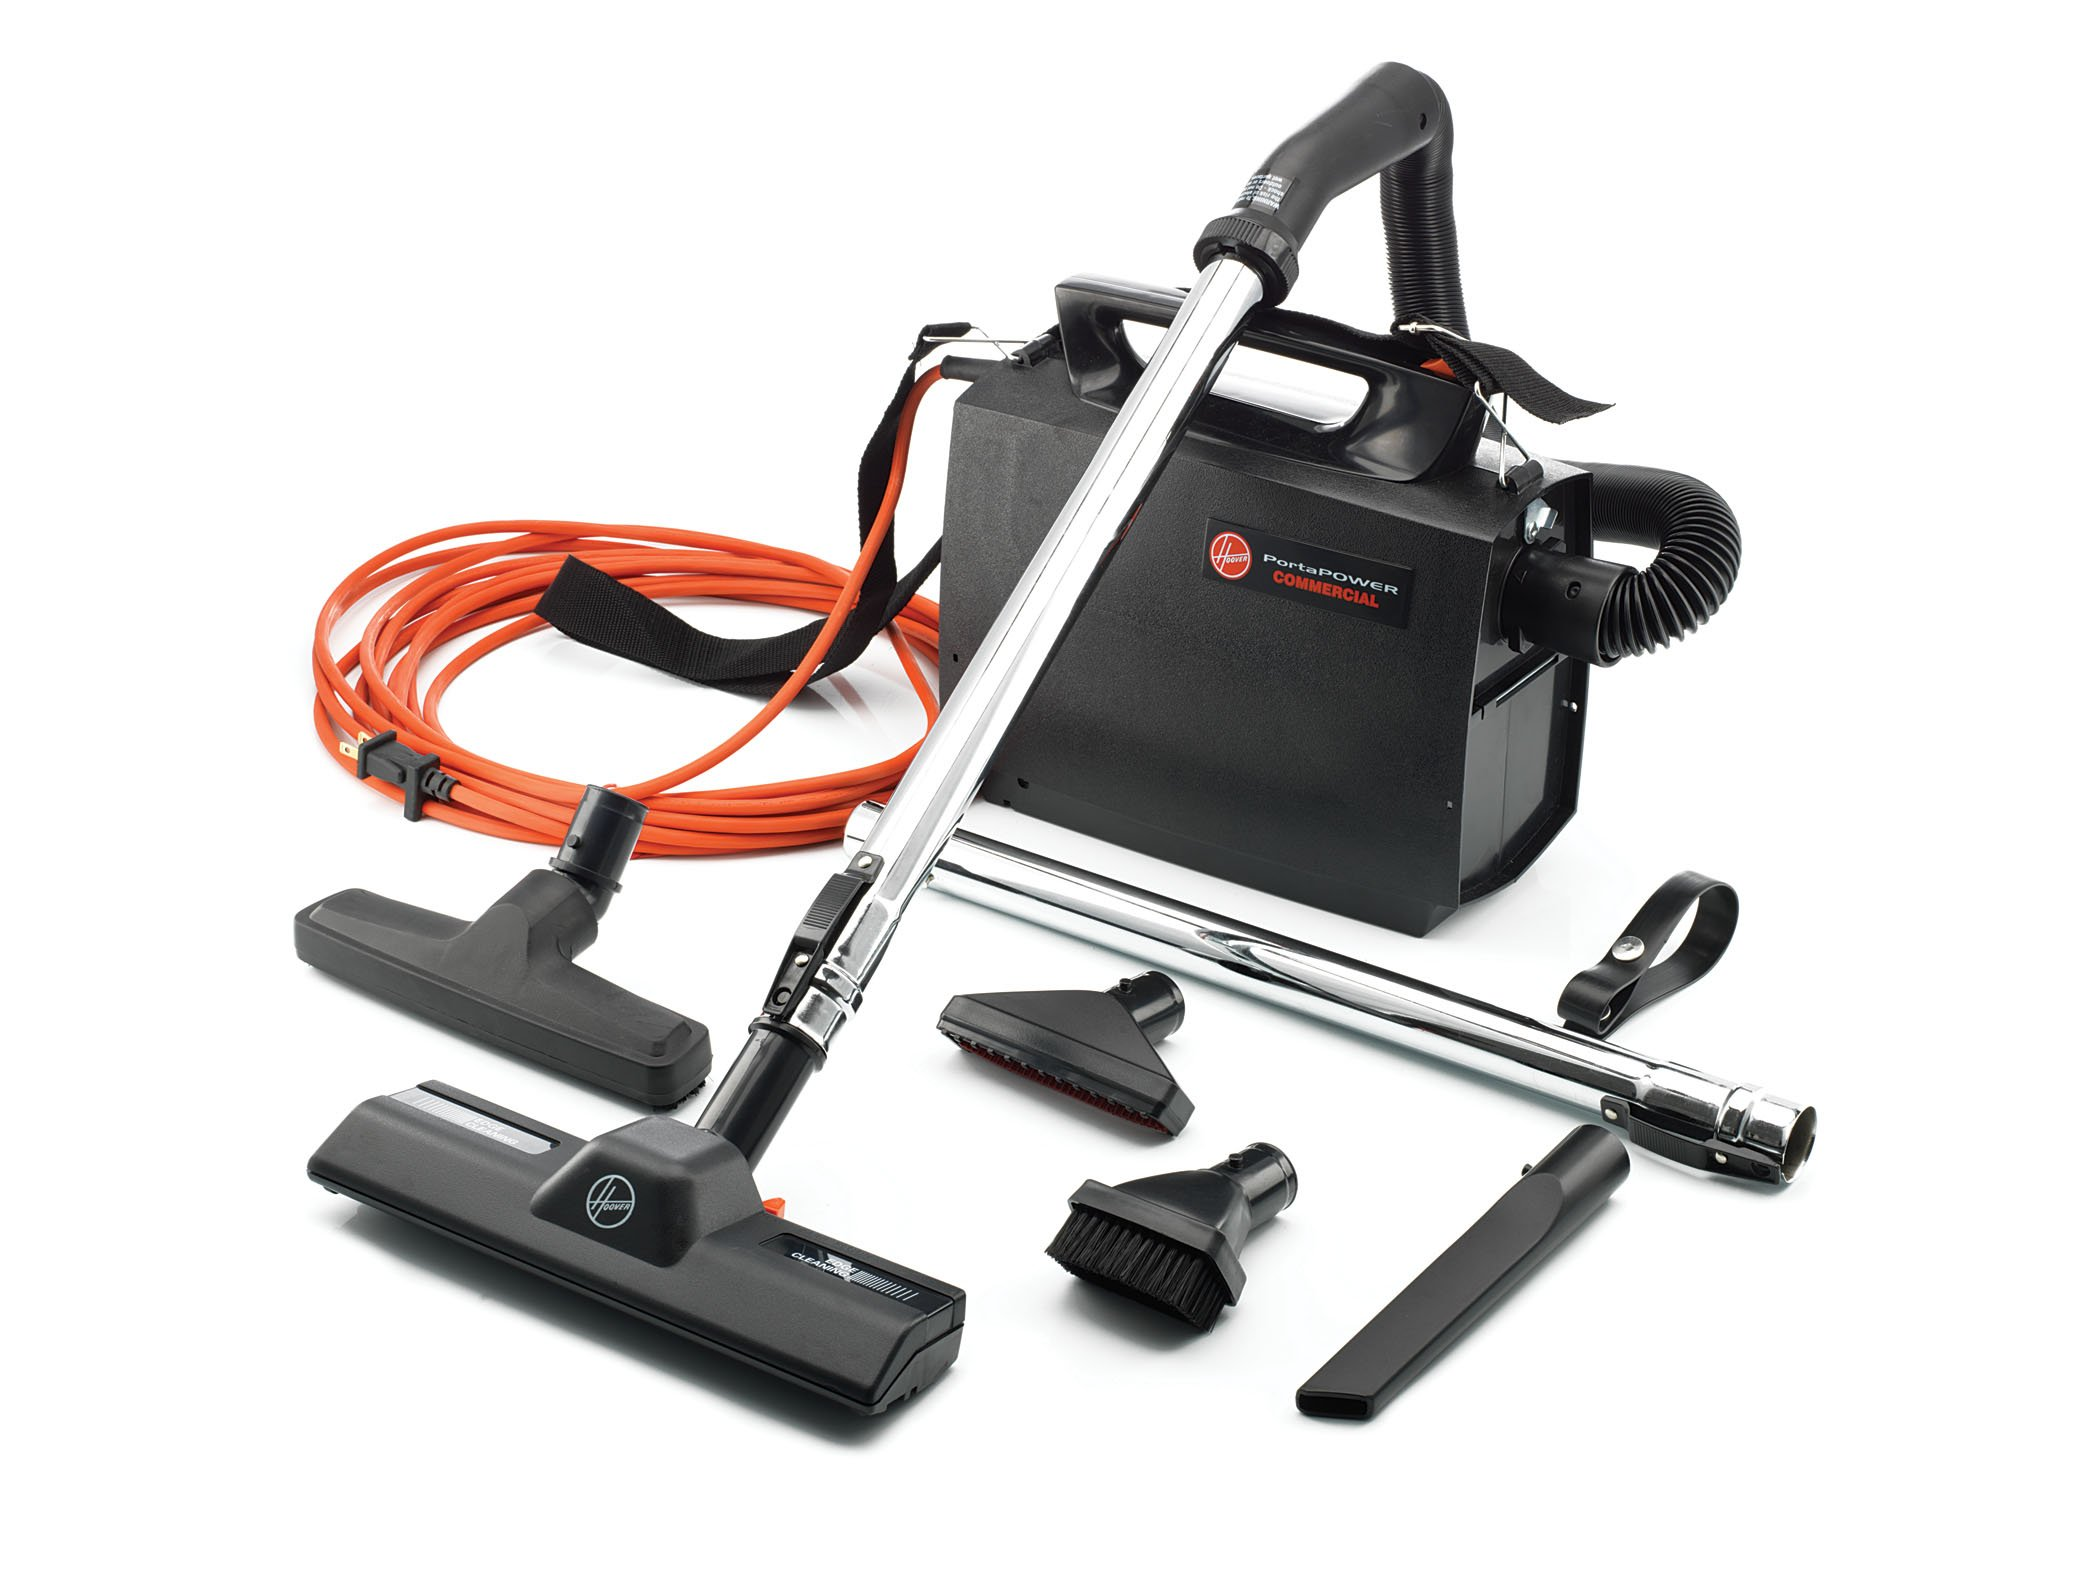 Hoover CH30000 PortaPower Lightweight Commercial Canister Vacuum by Hoover Commercial